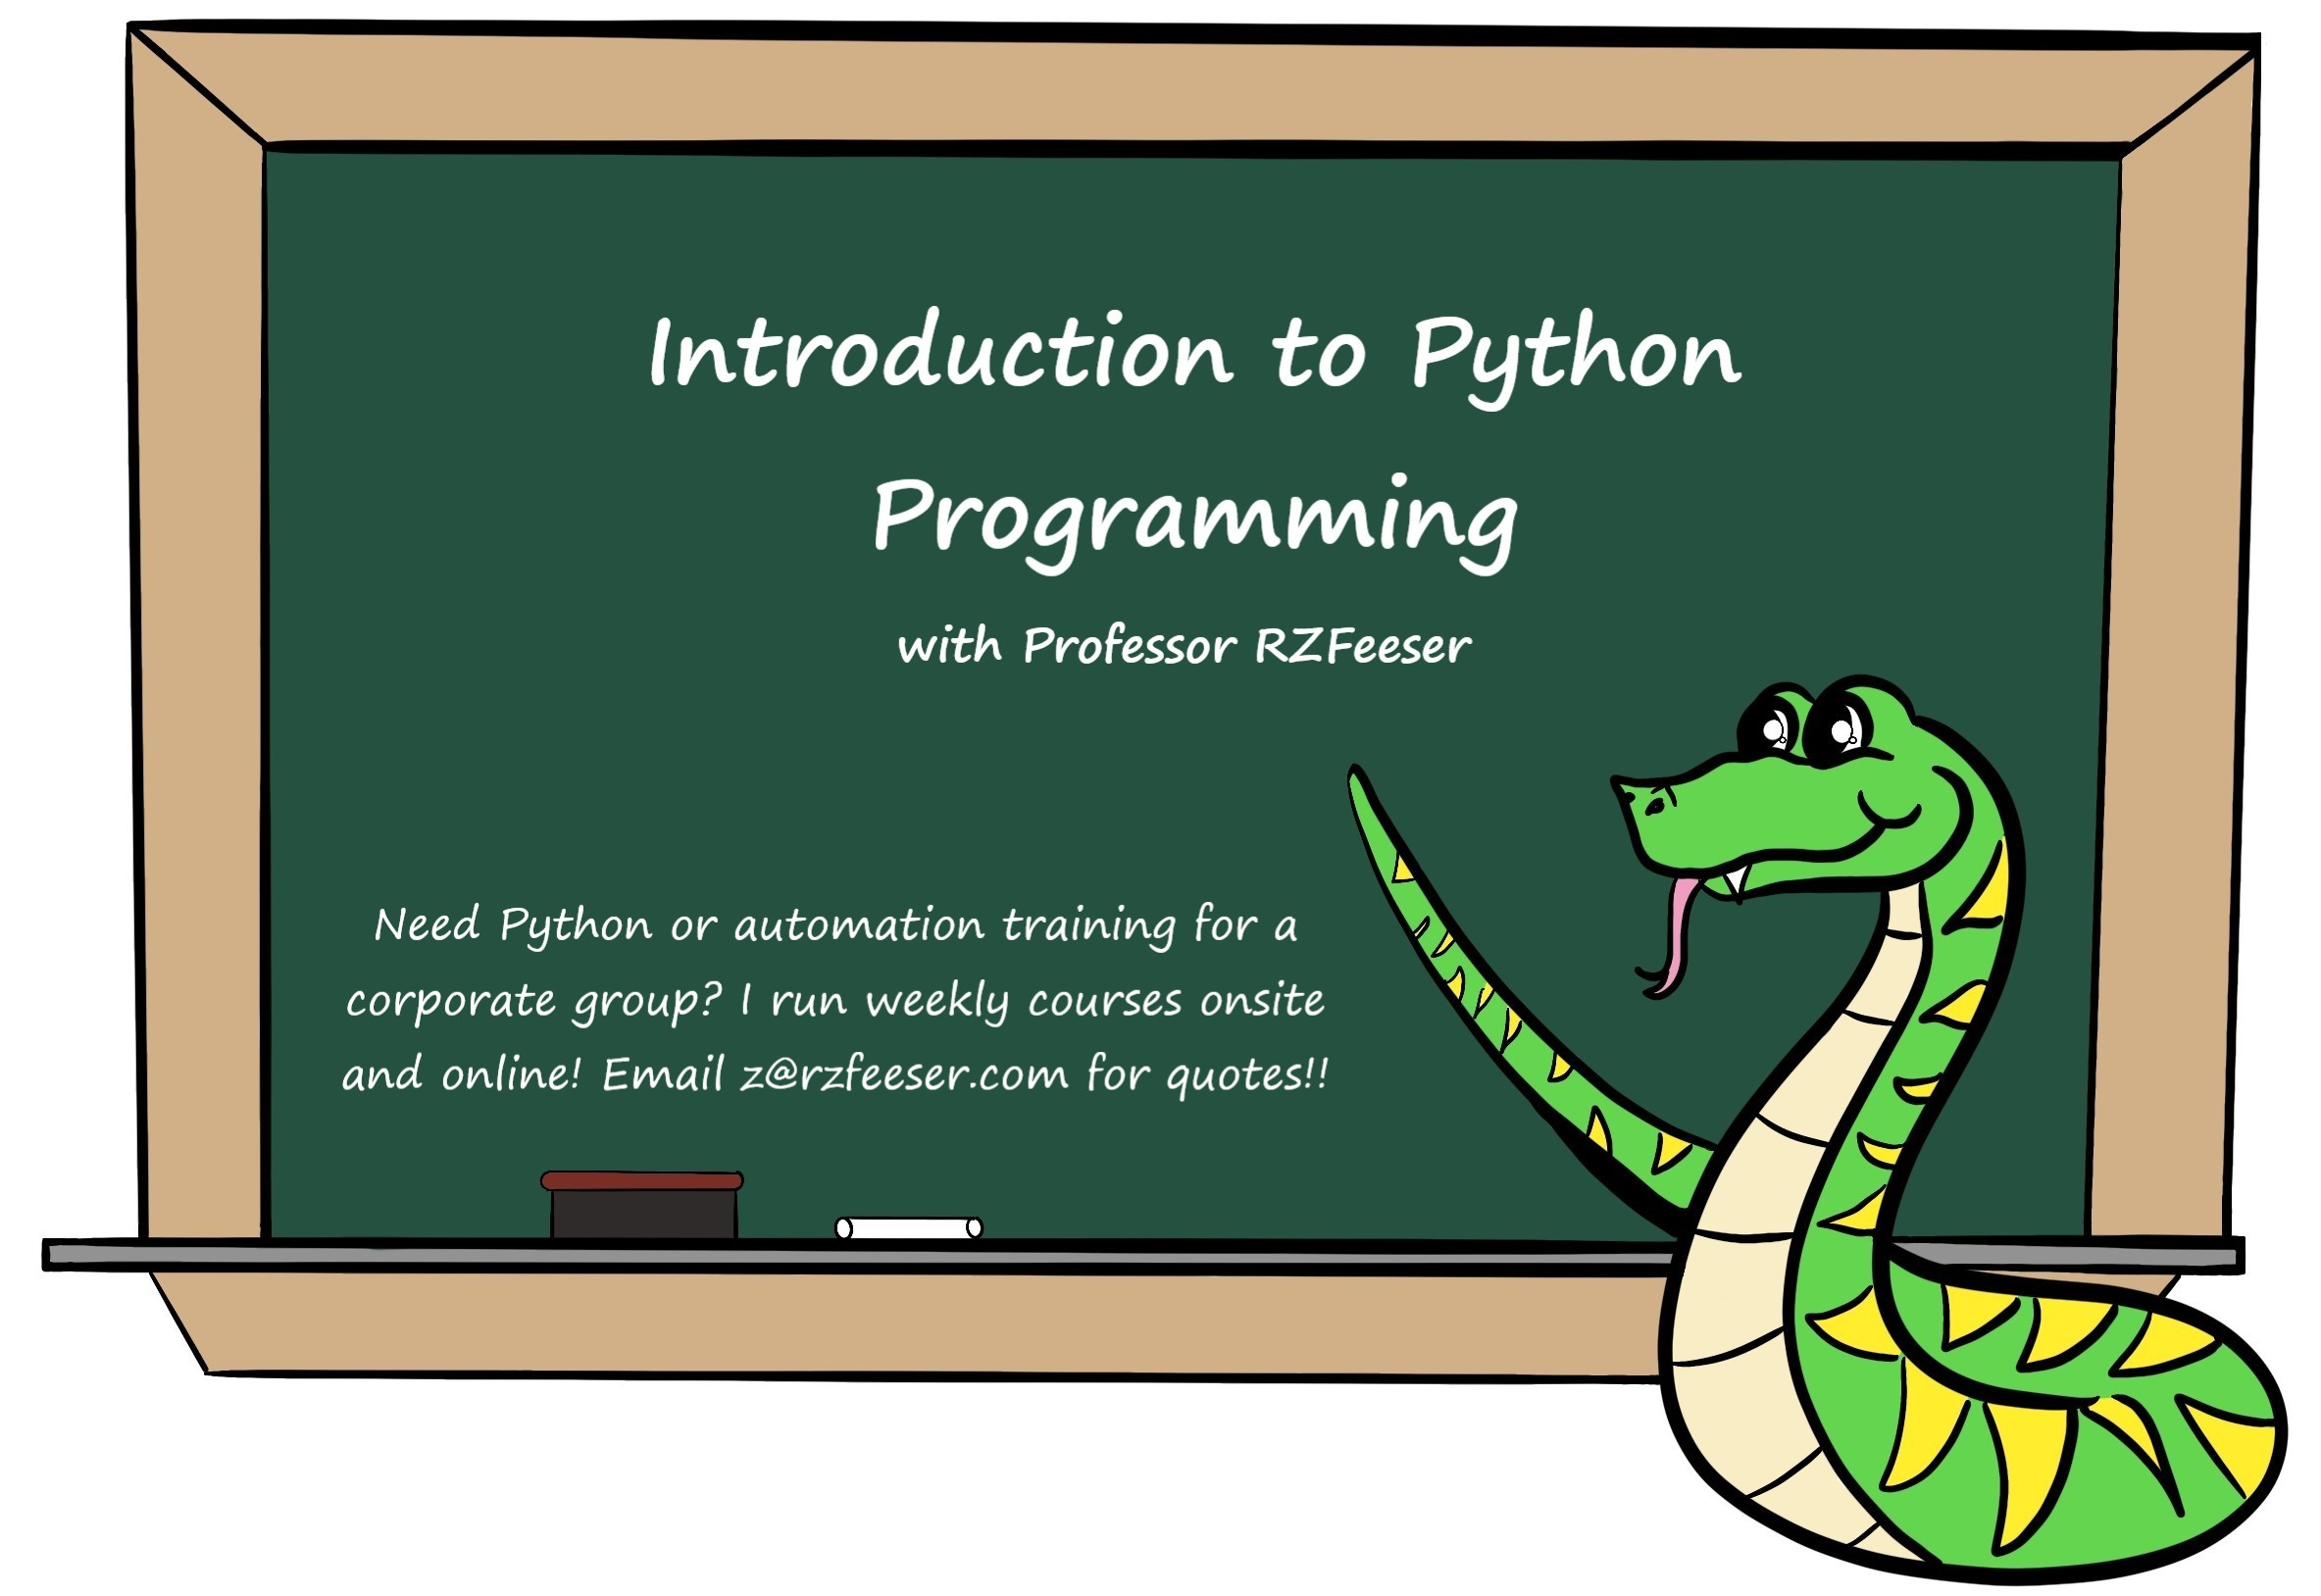 Introduction to Python Programming with RZFeeser